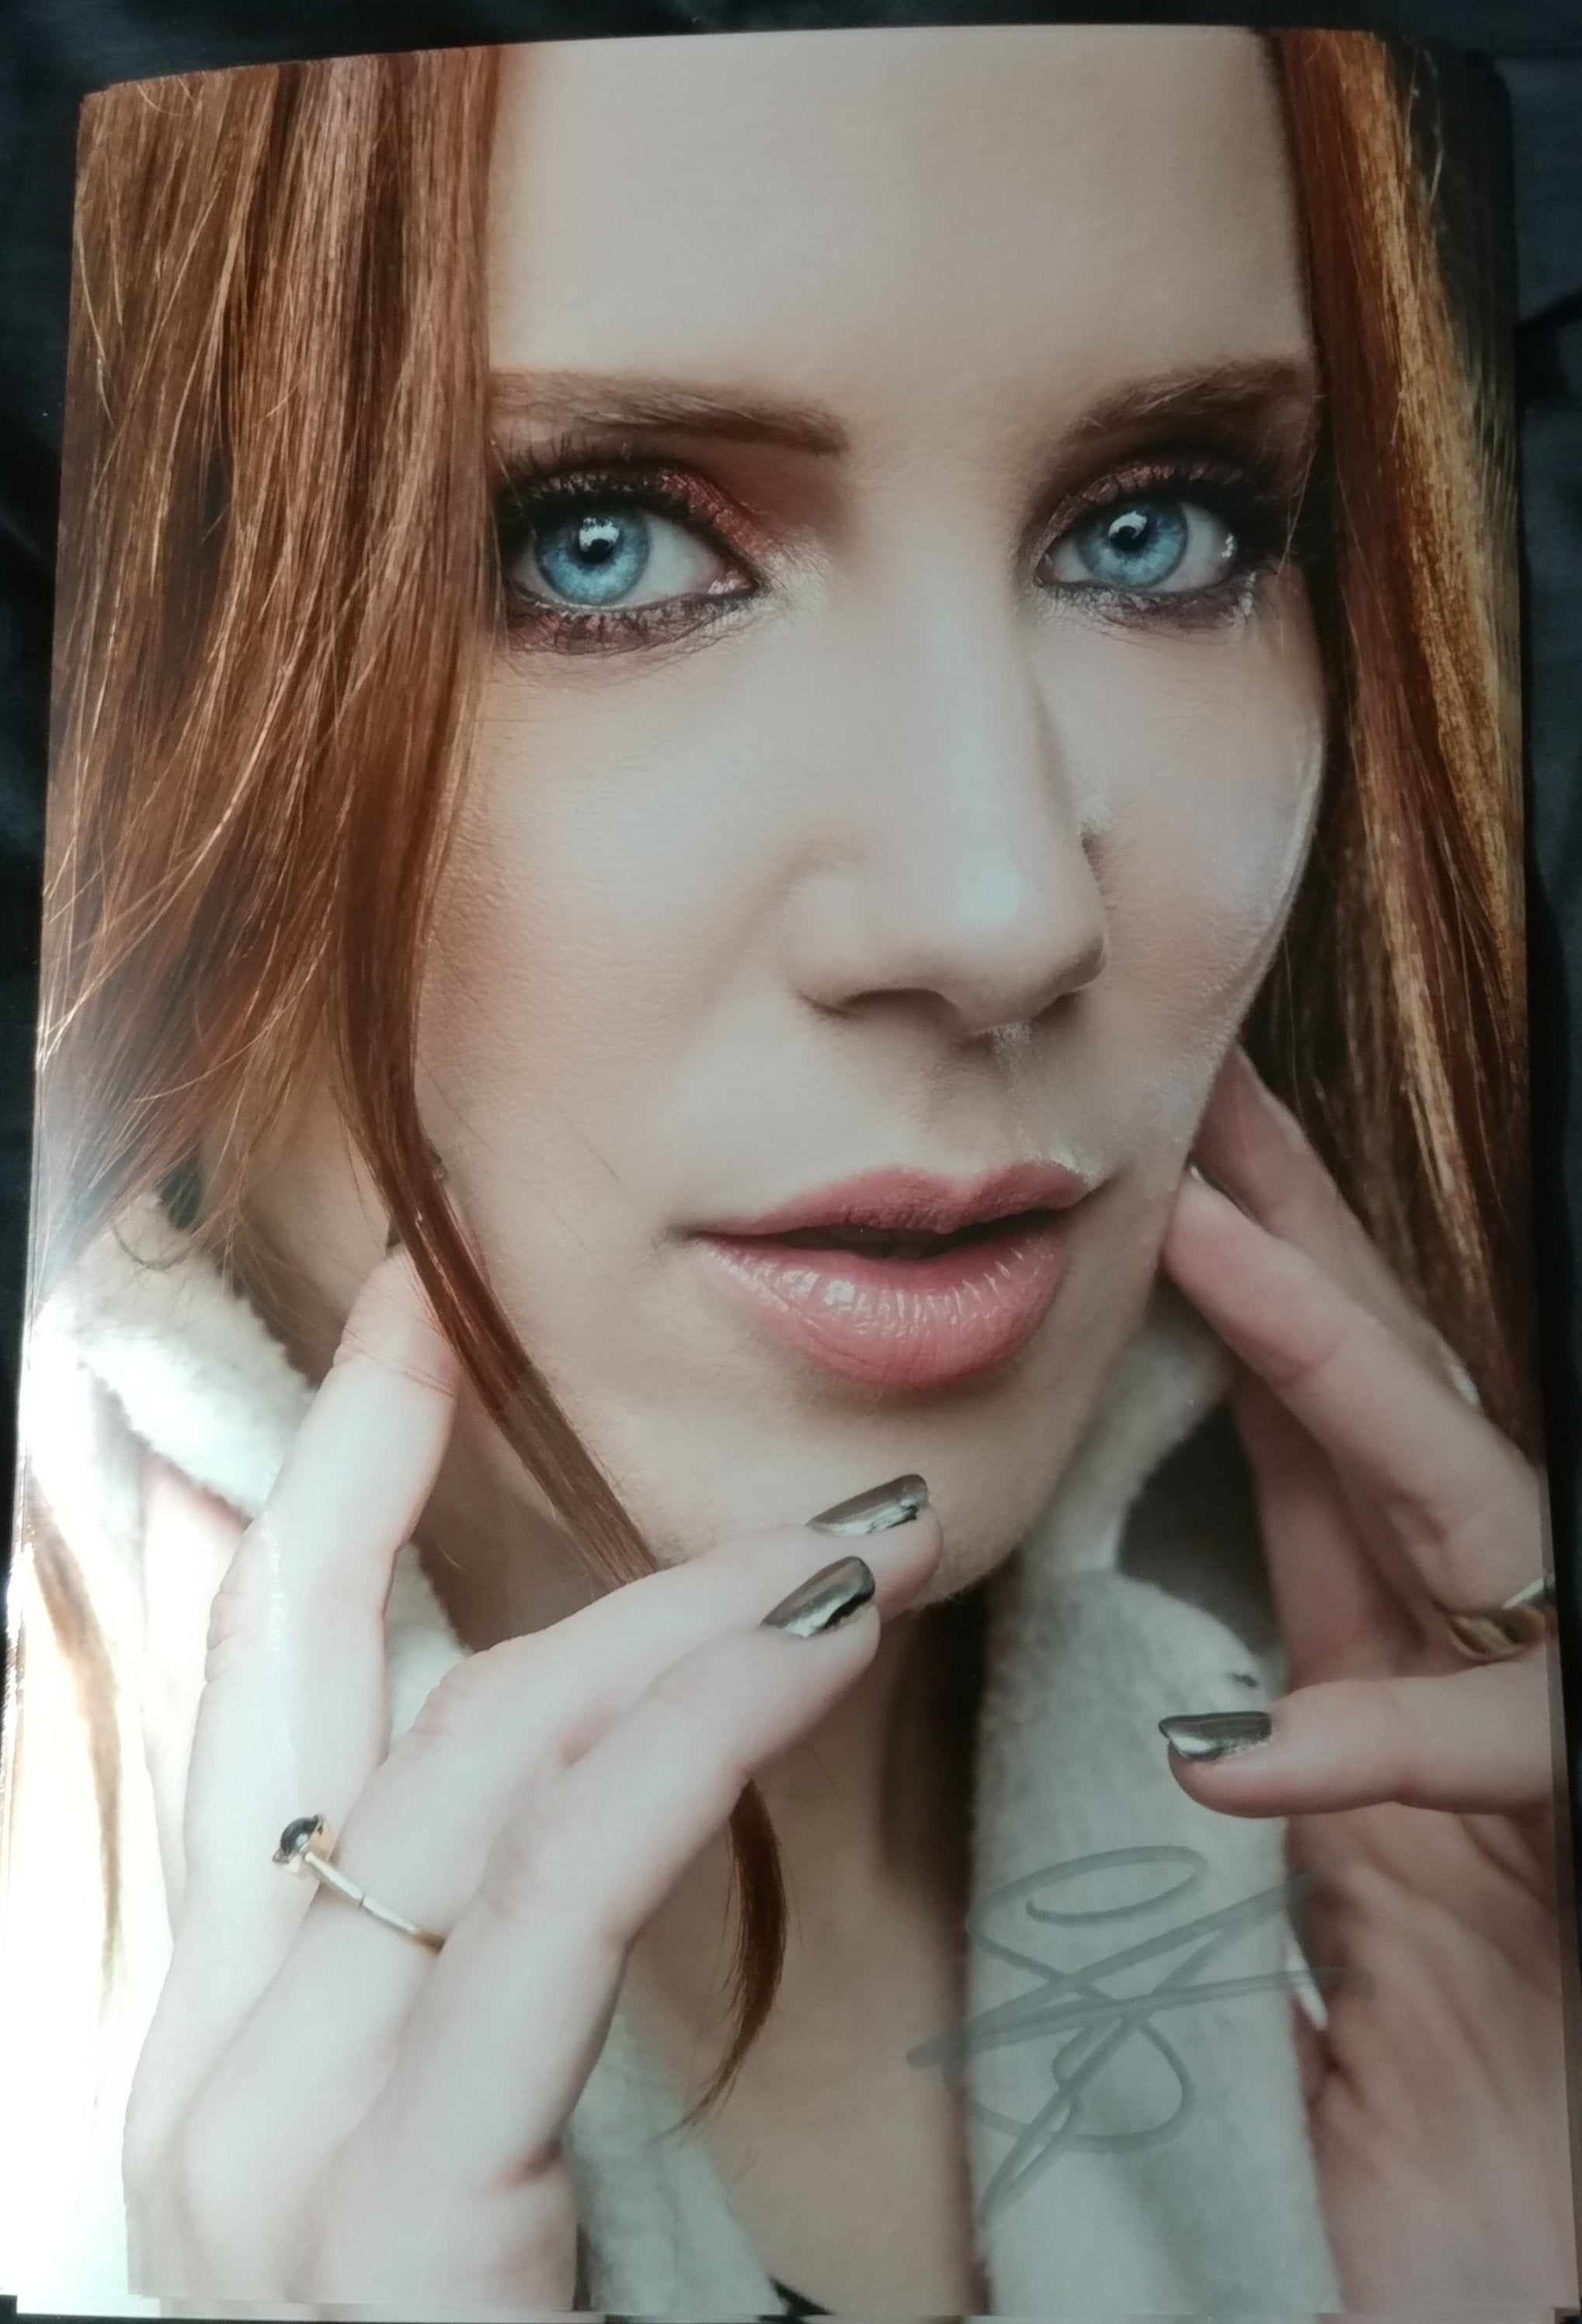 Simone Simons - Portrait - Signed Limited Edition Metallic Print (6 LEFT!)